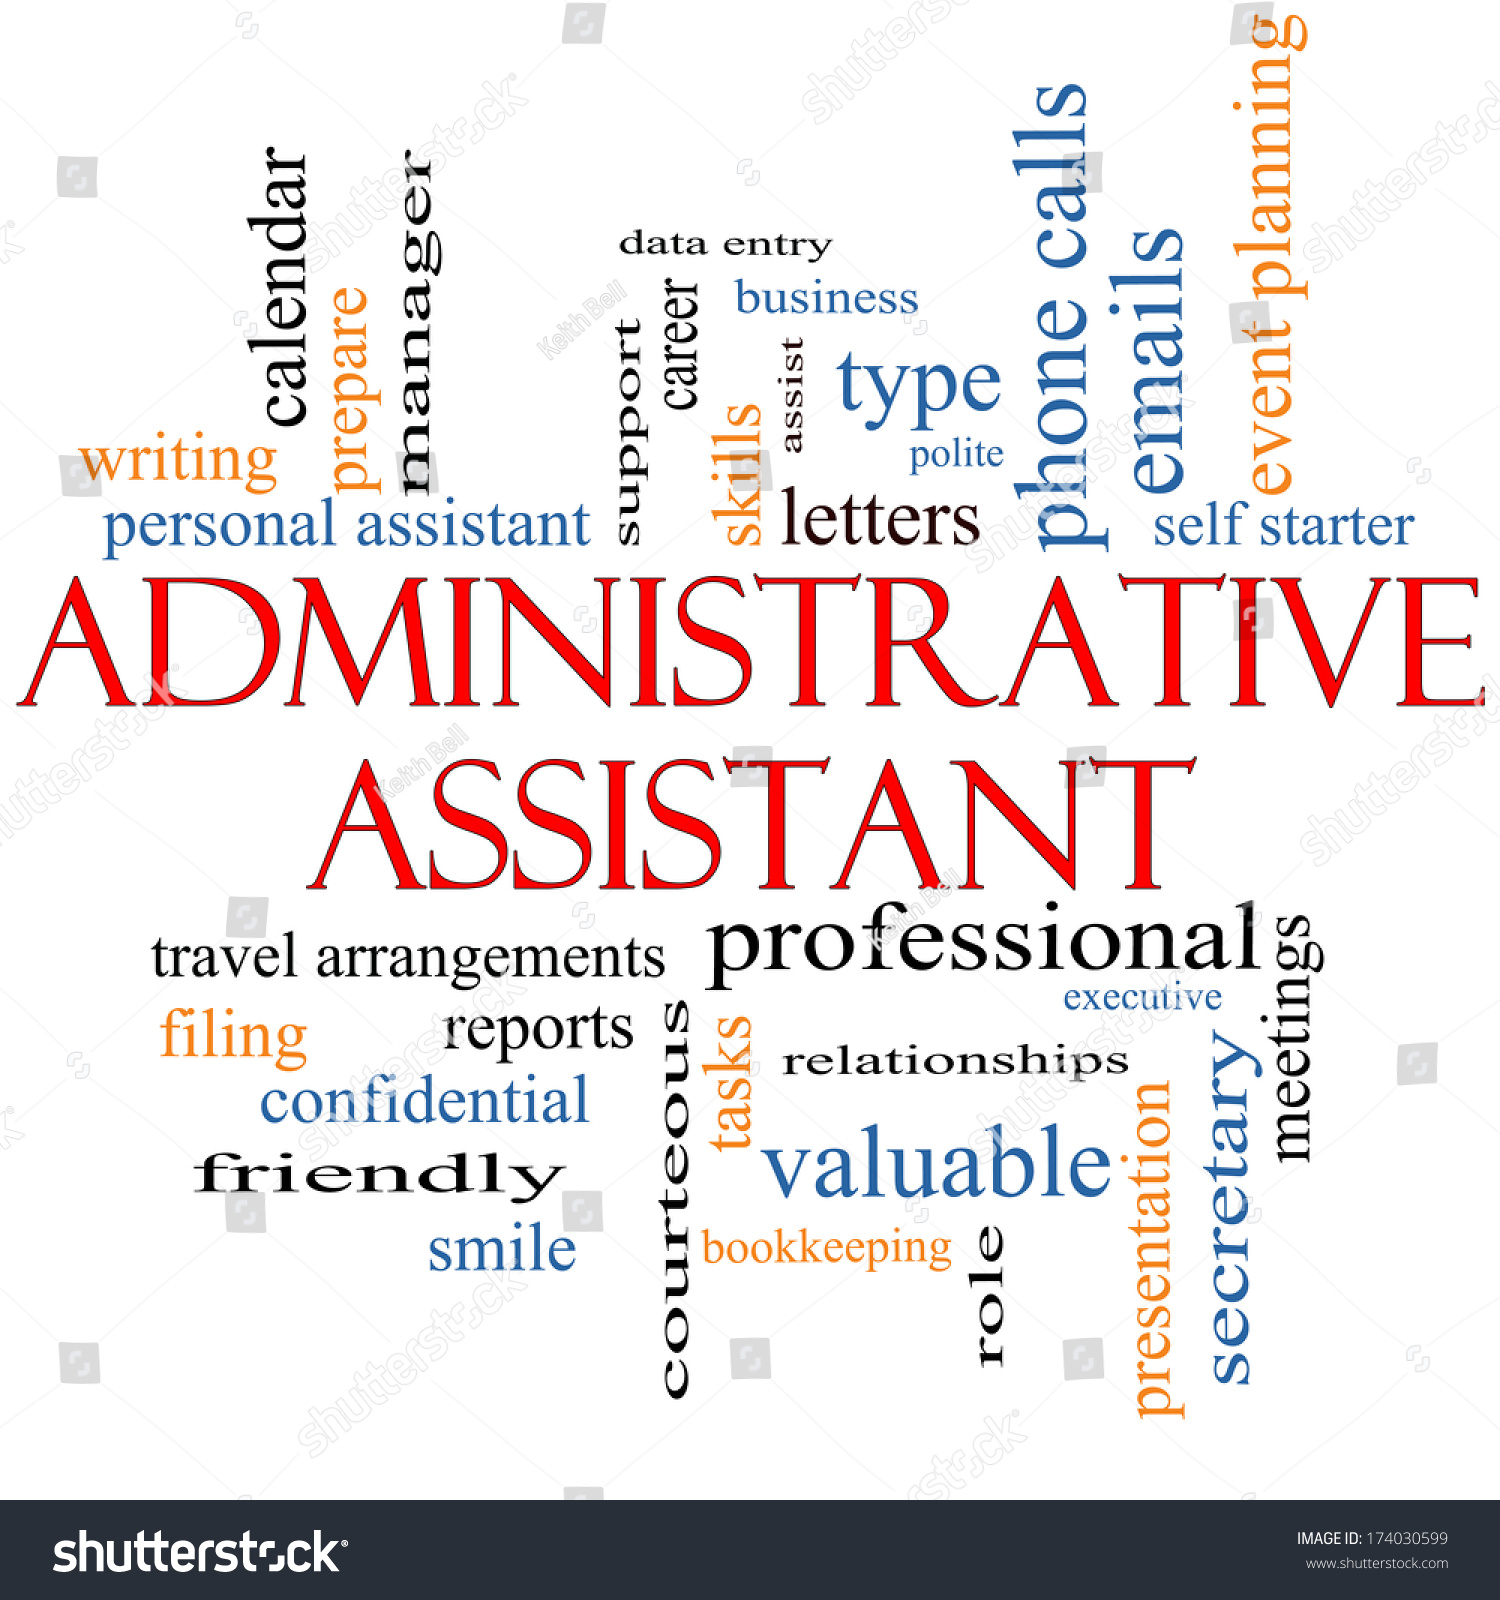 how to become an executive assistant canada